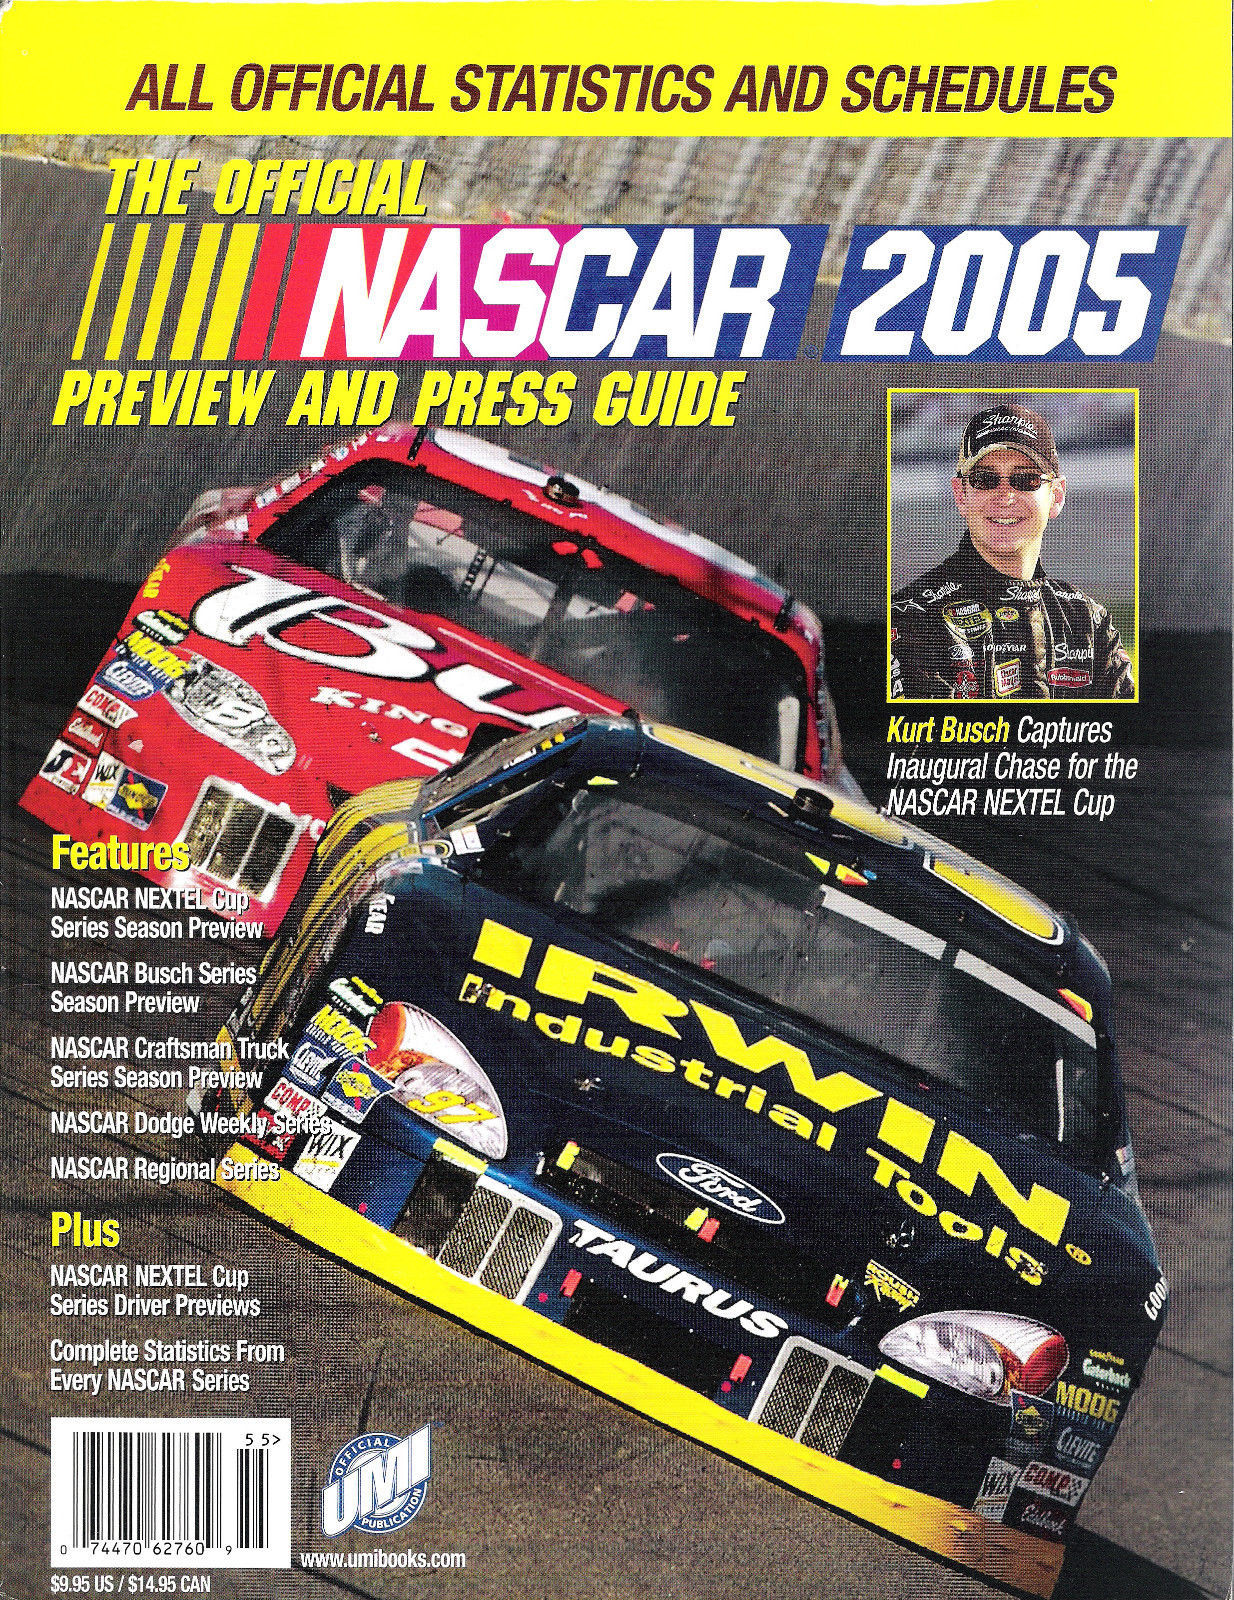 NASCAR 2005 Preview and Press Guide - FROM COLLECTOR'S STOCK